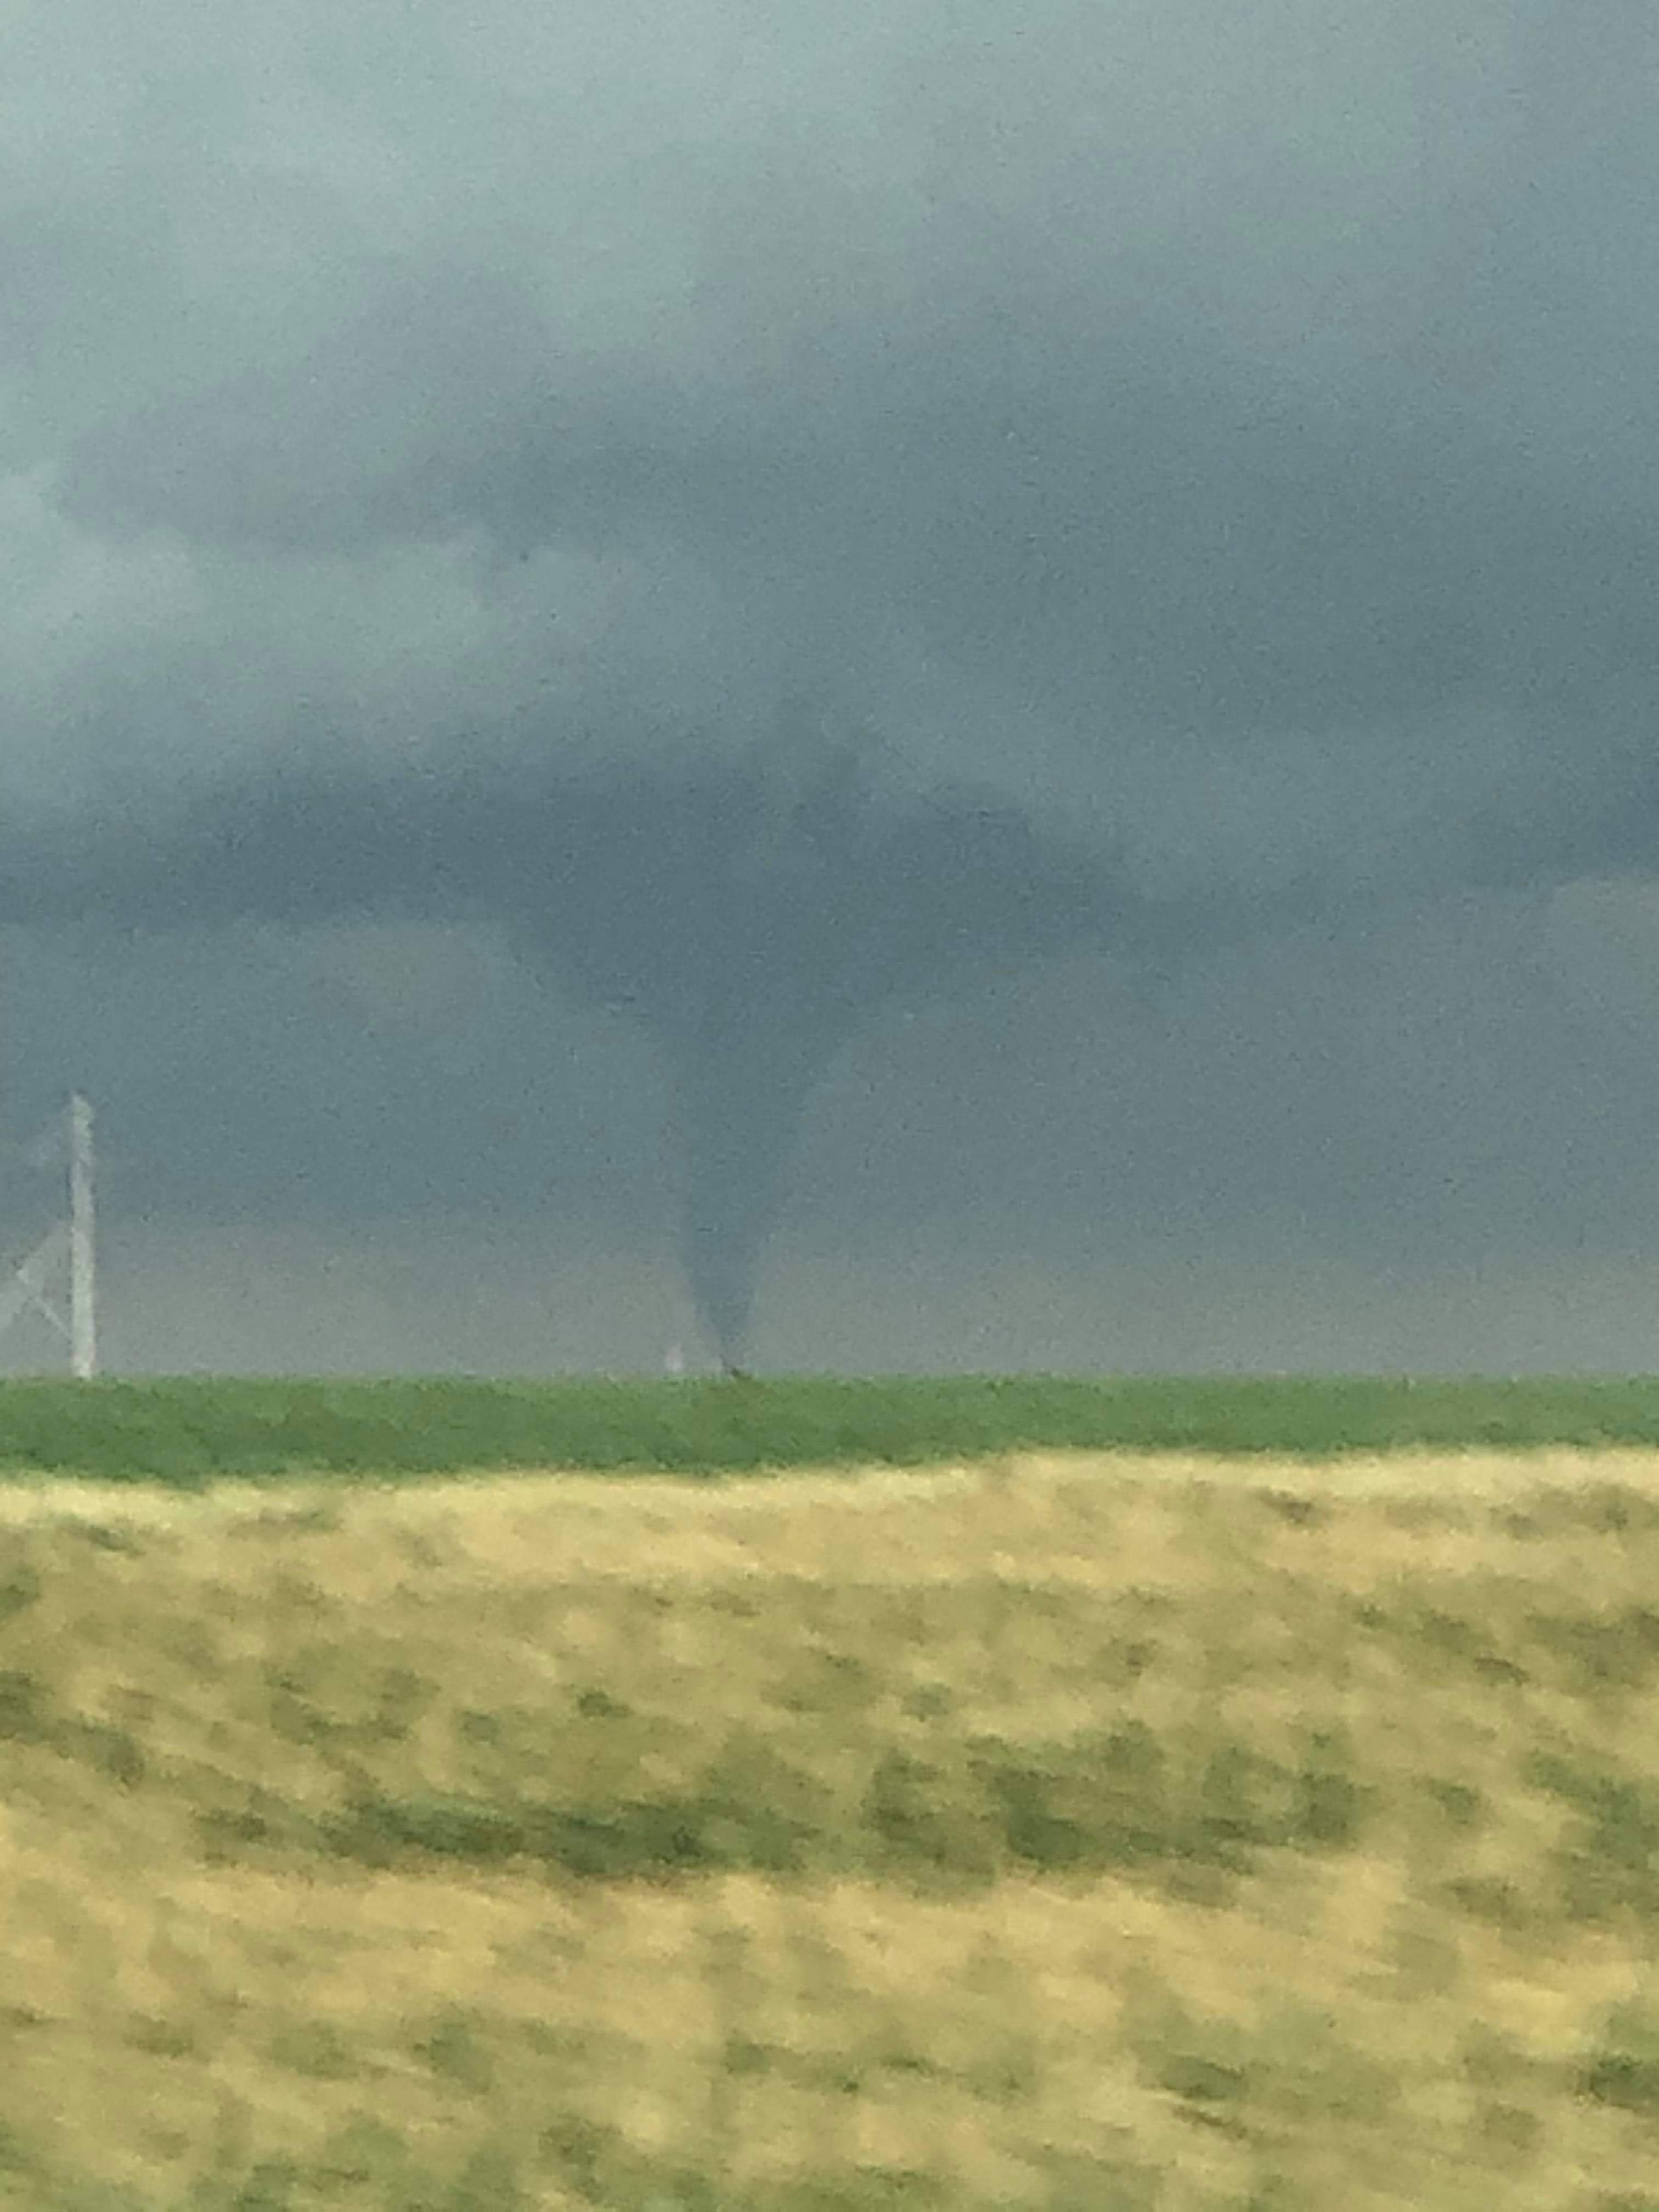 Tornado warnings in effect for Red Willow, Hitchcock Counties